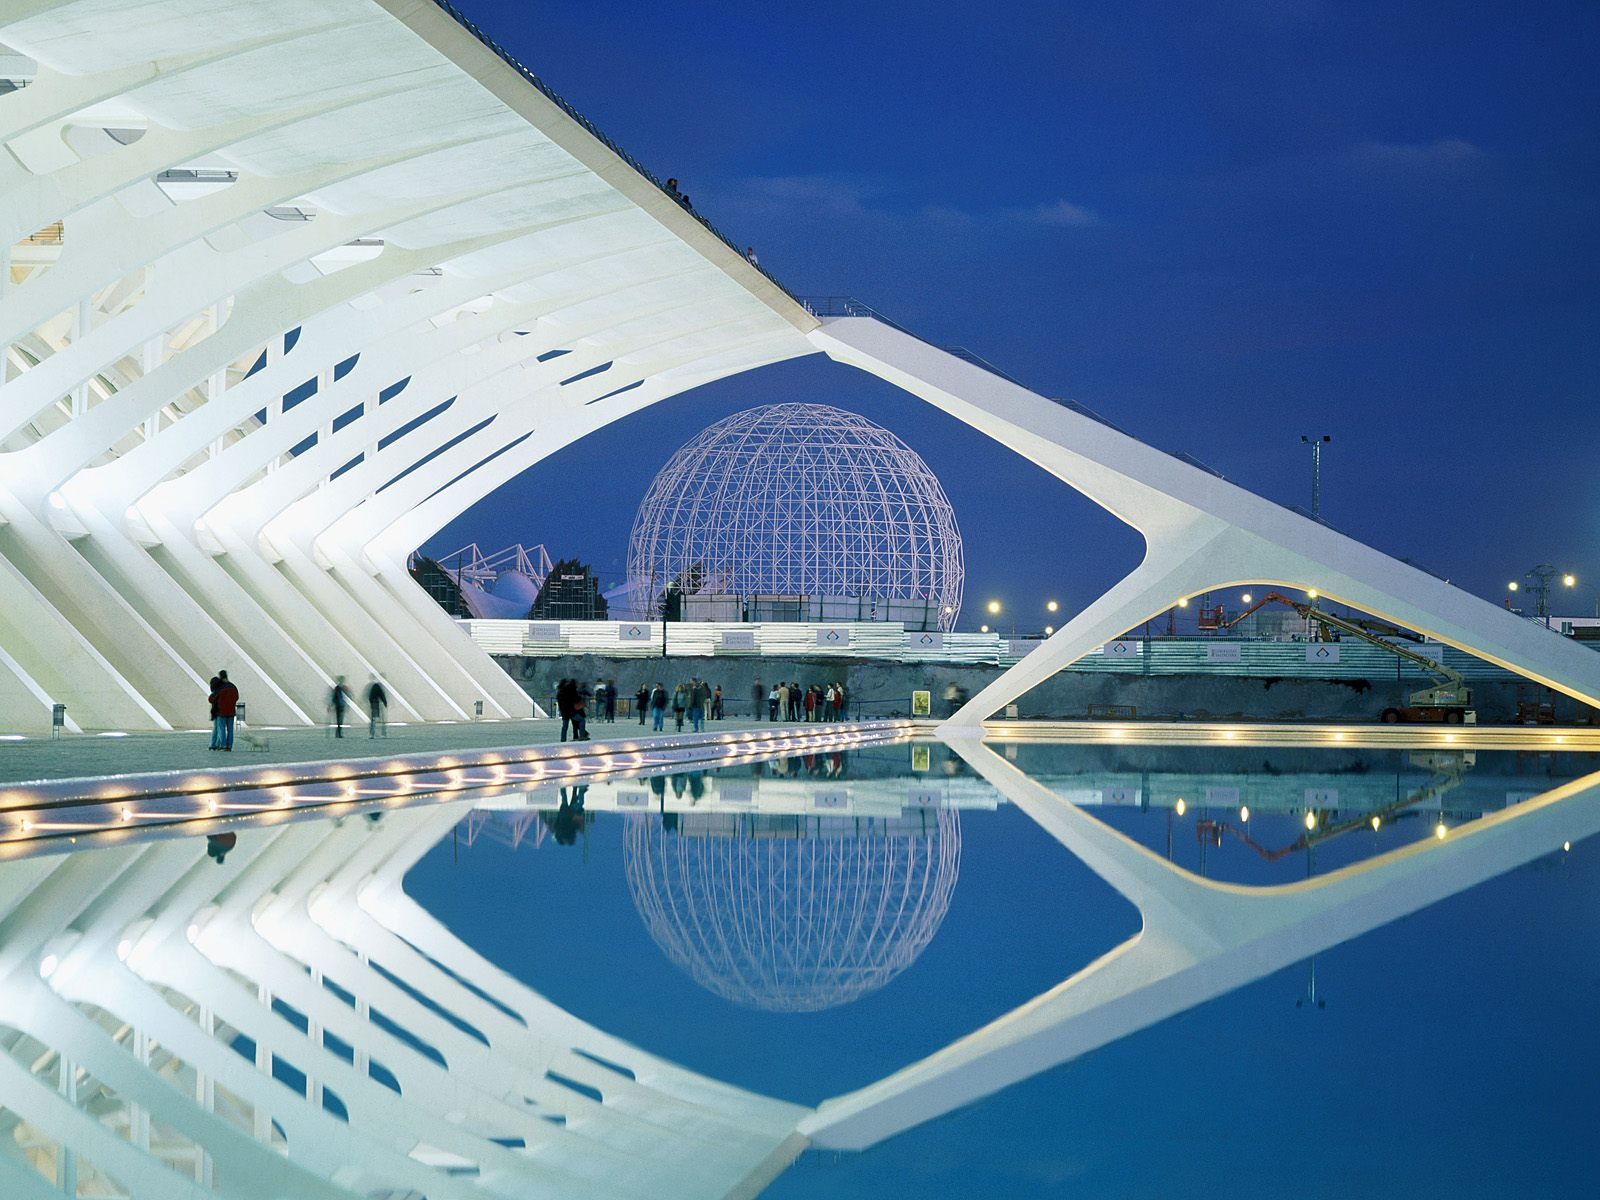 City of Arts and Sciences Spain8718510688 - City of Arts and Sciences Spain - Spain, Sciences, Itza, City, Arts